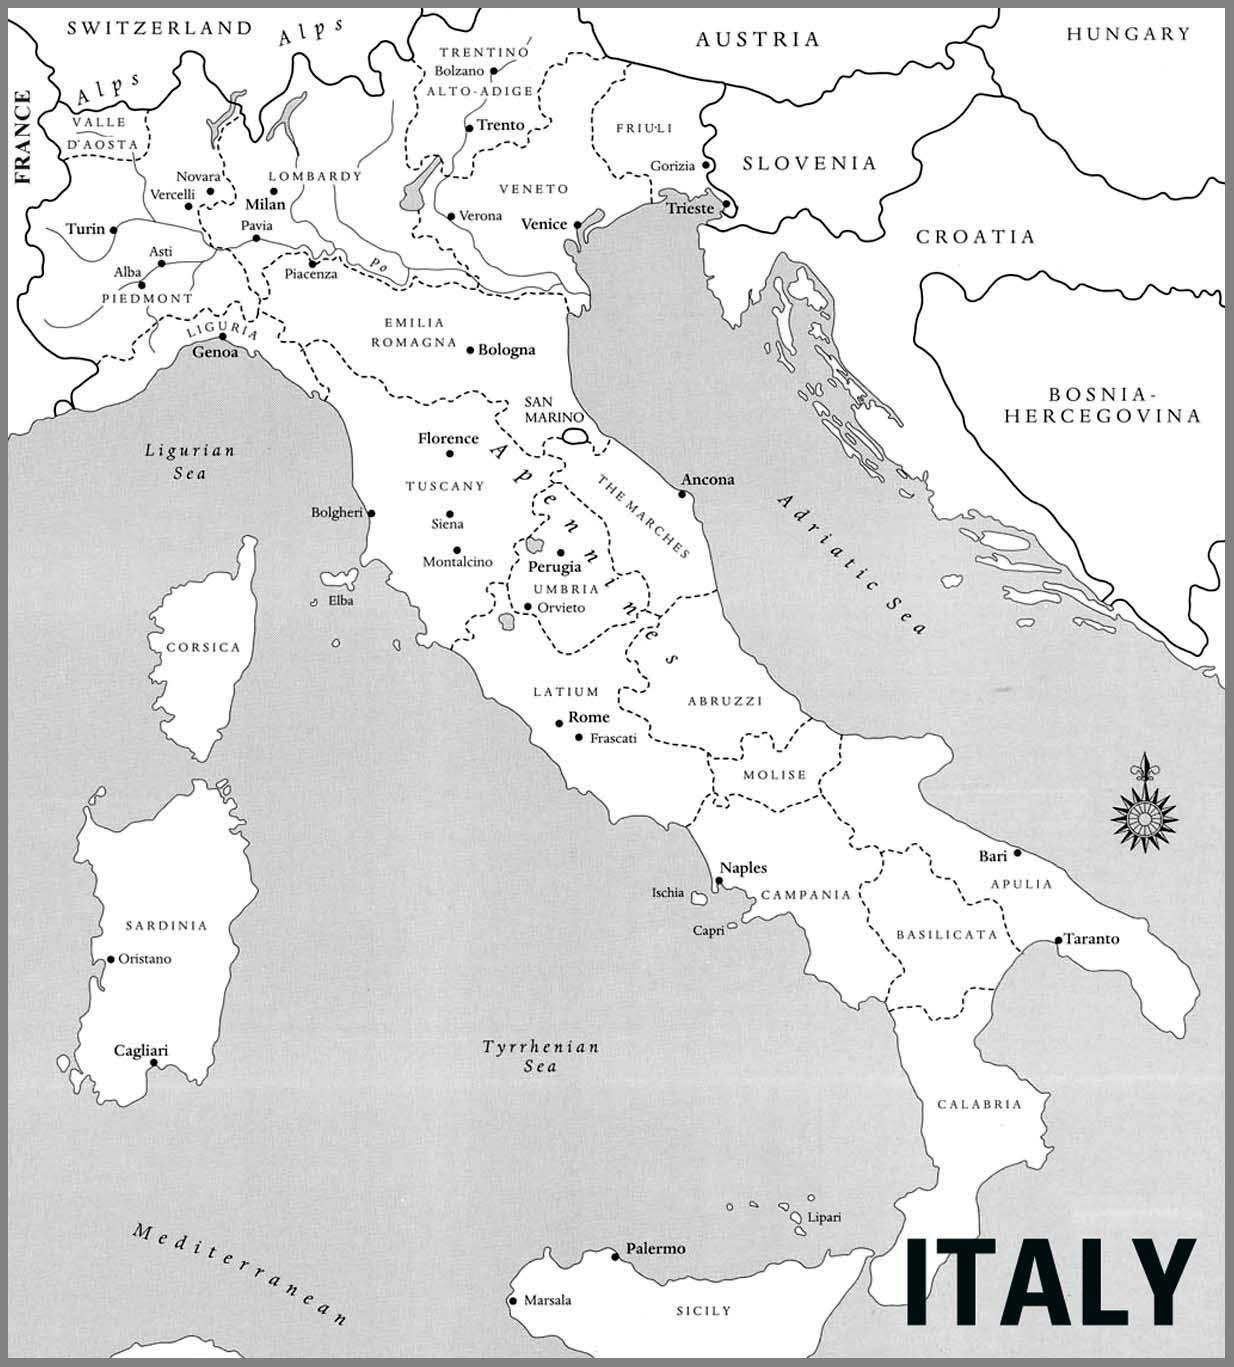 Map Of Italy Black And White.Italy Map Black And White Map Of Italy Black And White Southern